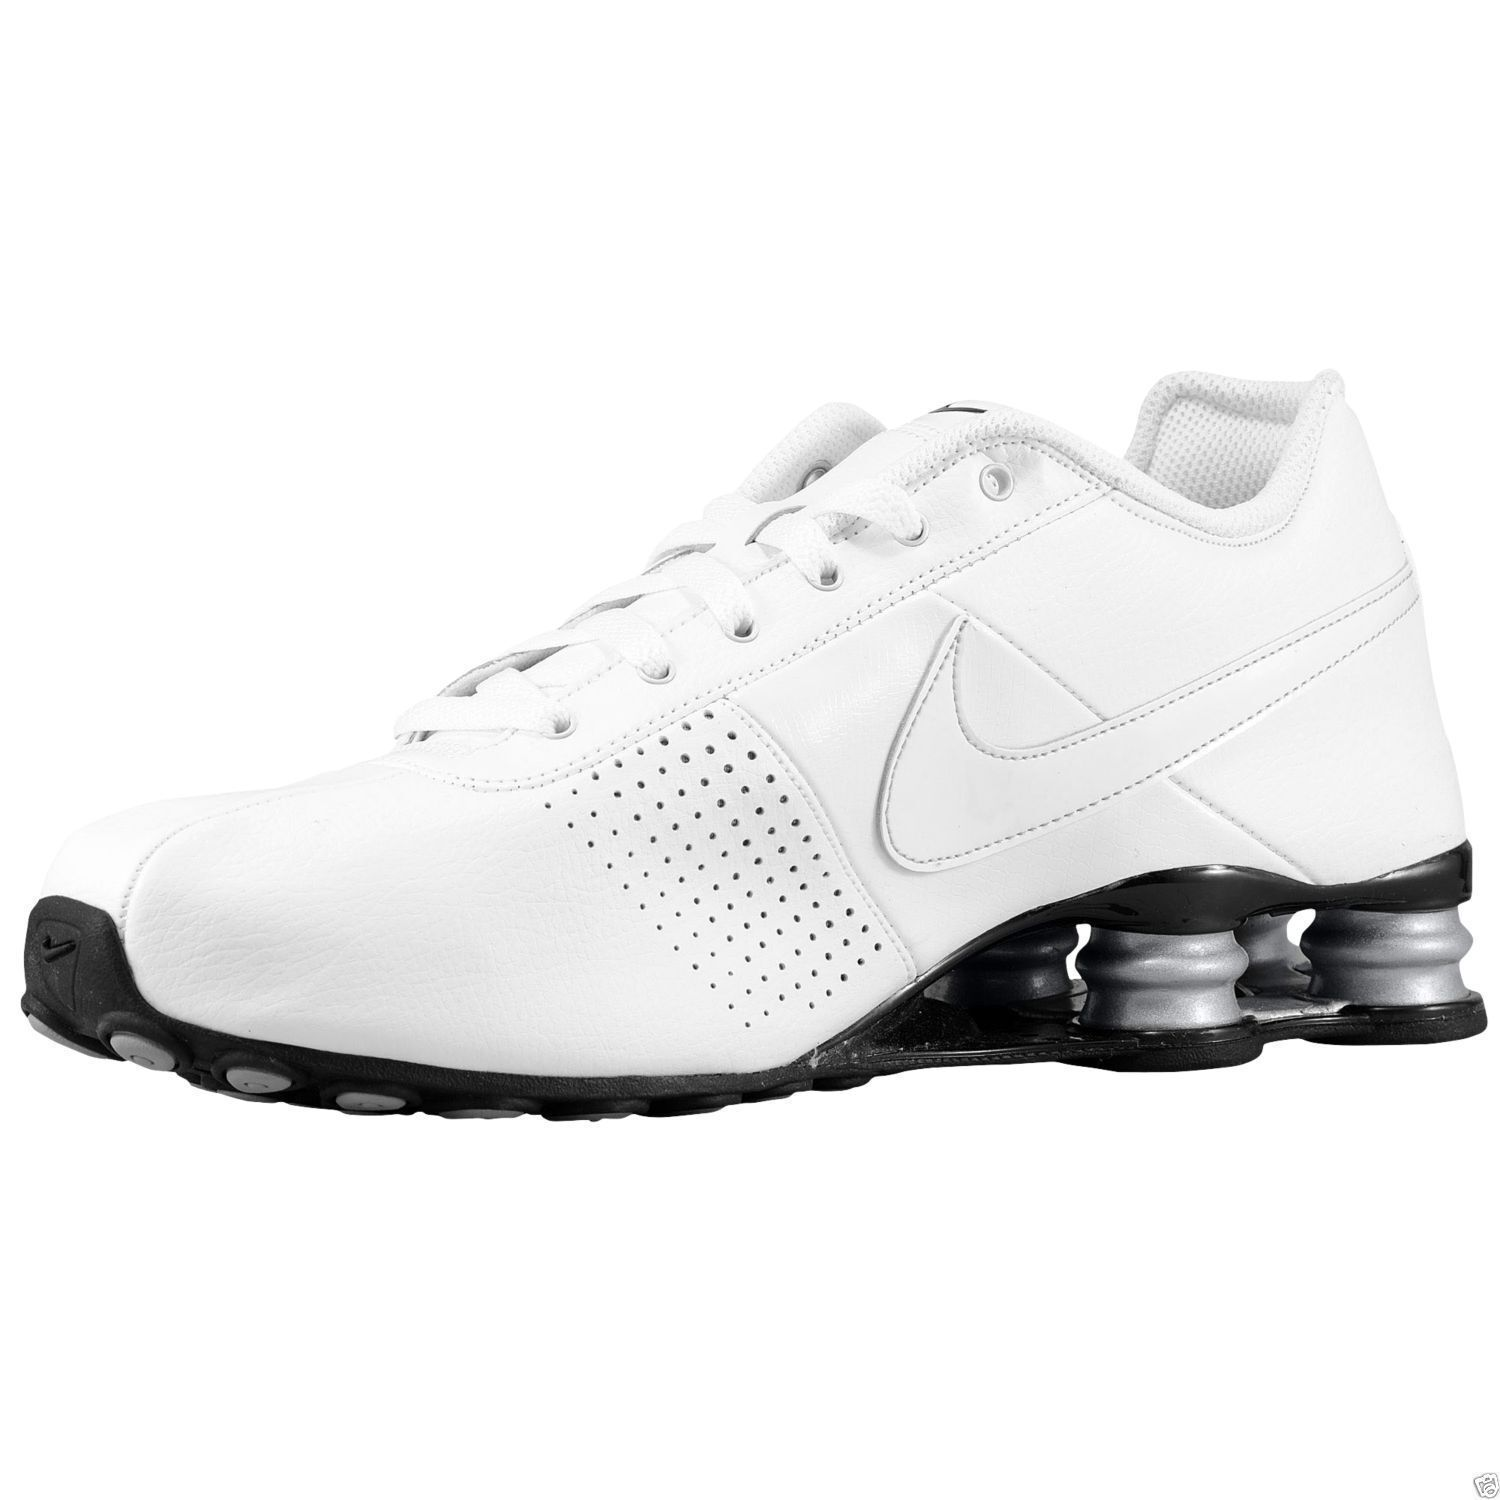 ... shopping nike shox deliver mens size 10 running shoes white metallic  silver 317547 109 ebay 19e43 ... f2dbe5cc1